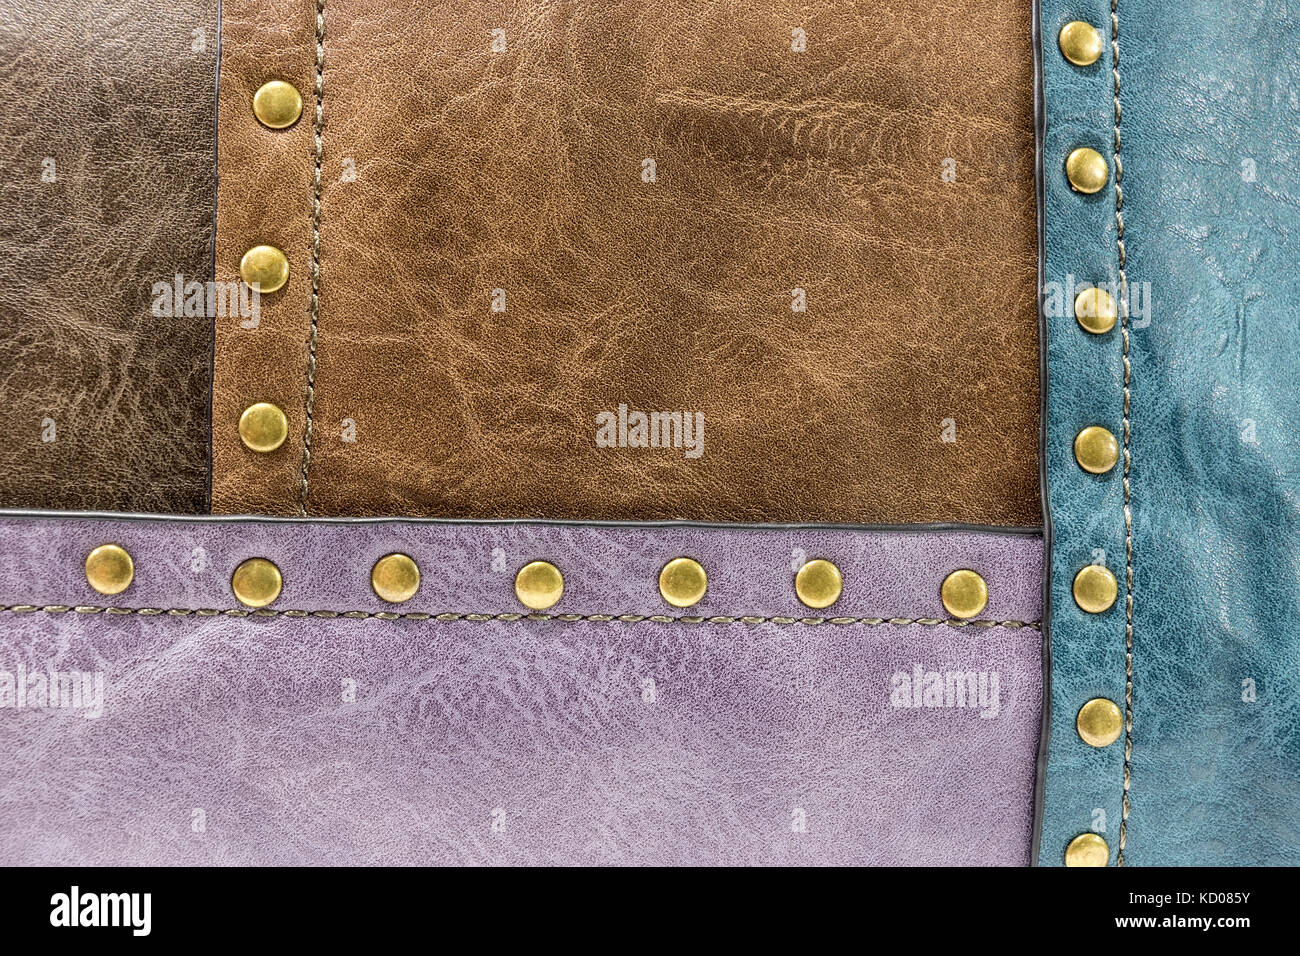 texture of colorful skin, still life photography, Studio - Stock Image